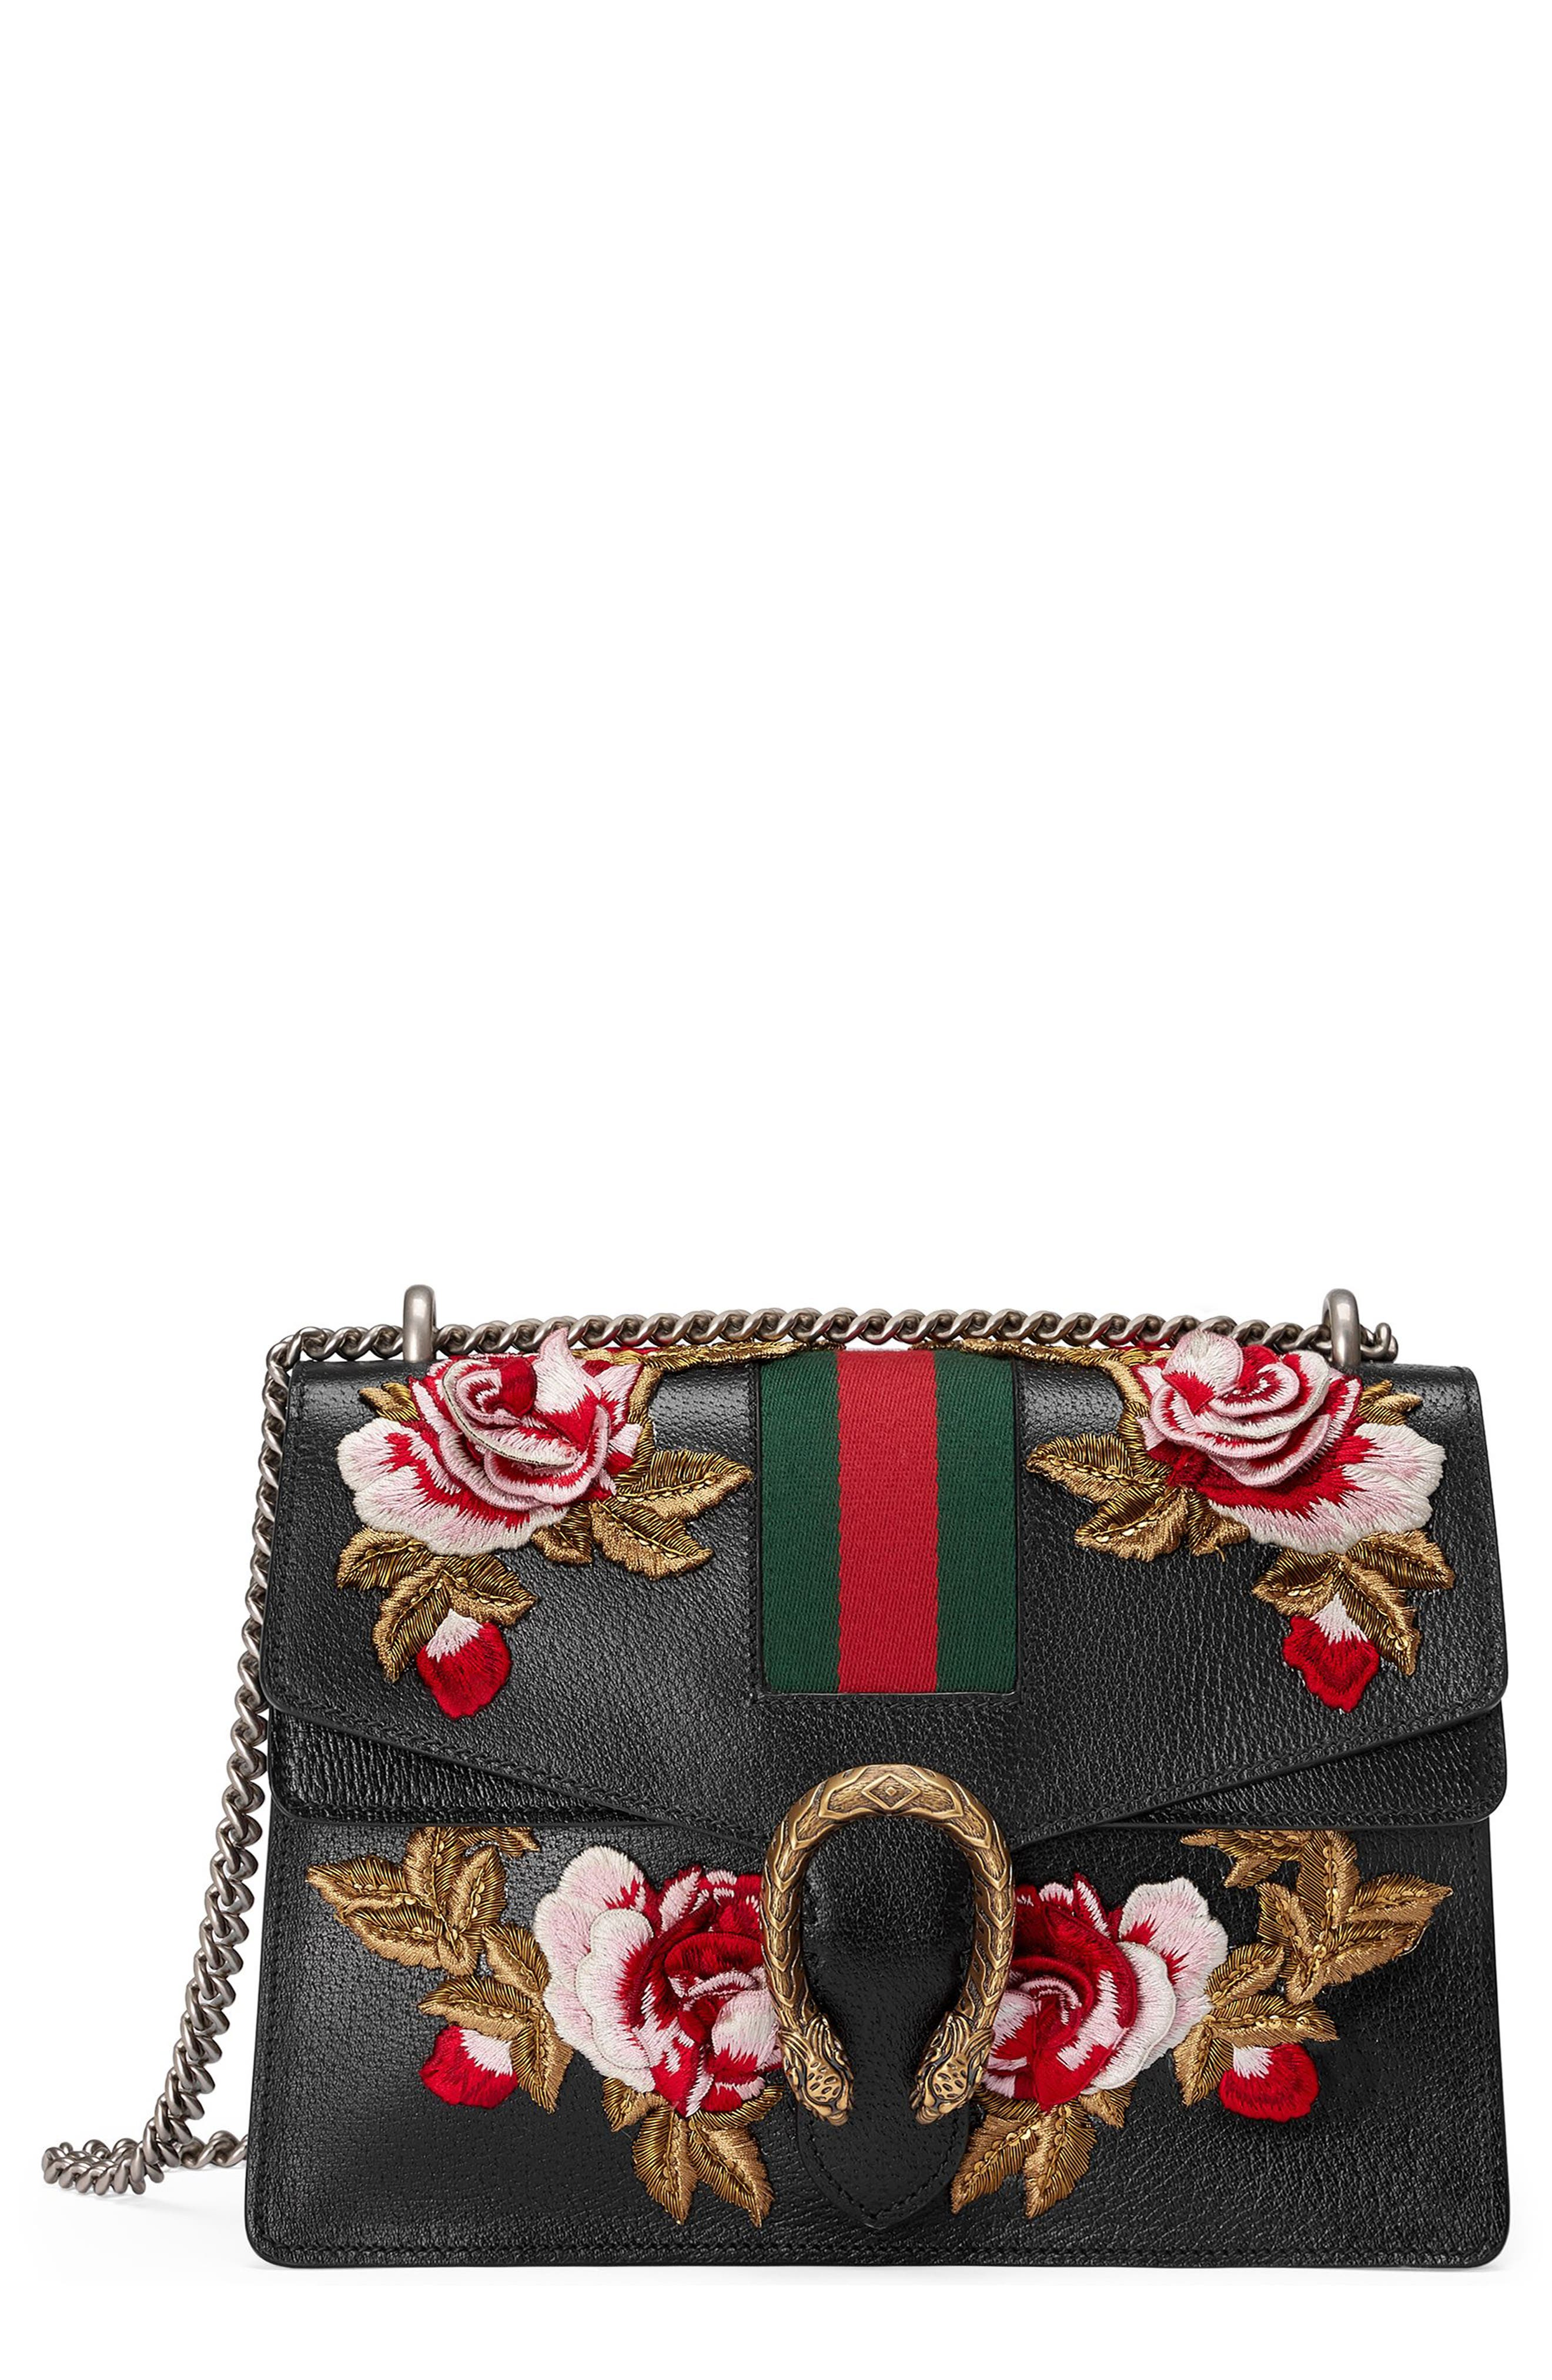 Main Image - Gucci Medium Dionysus Embroidered Roses Leather Shoulder Bag